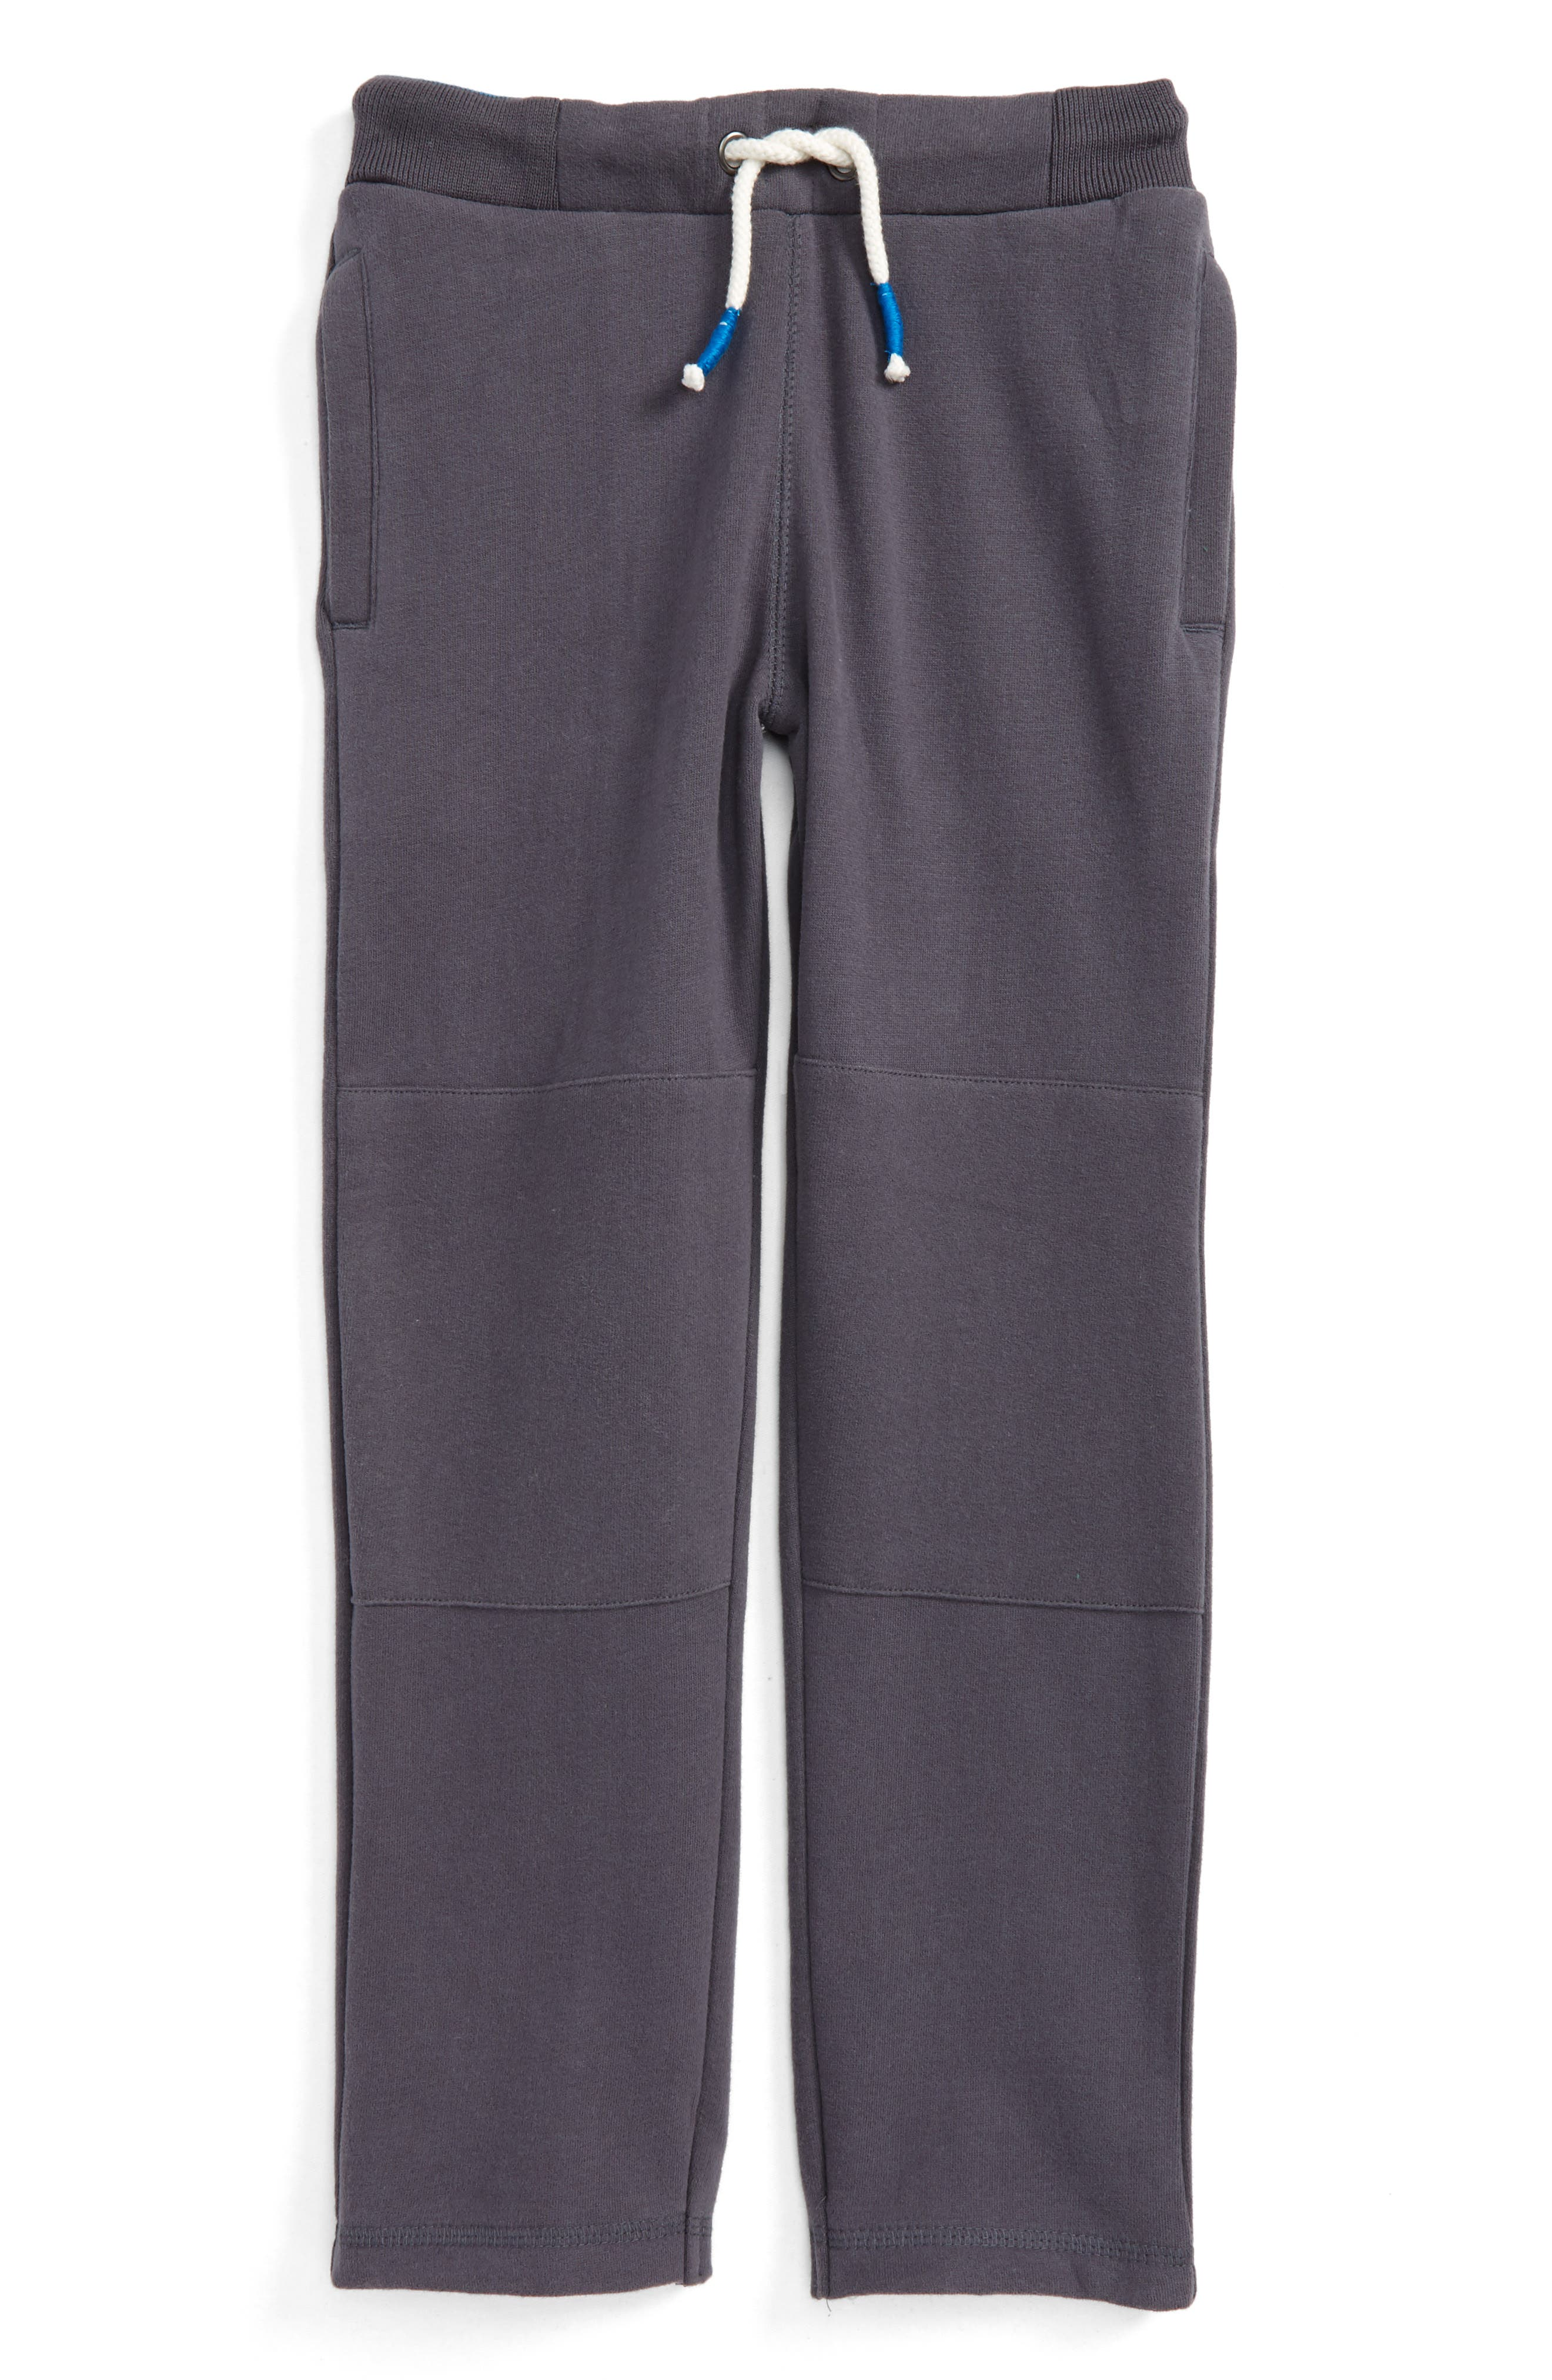 Warrior Knee Sweatpants,                         Main,                         color, 024